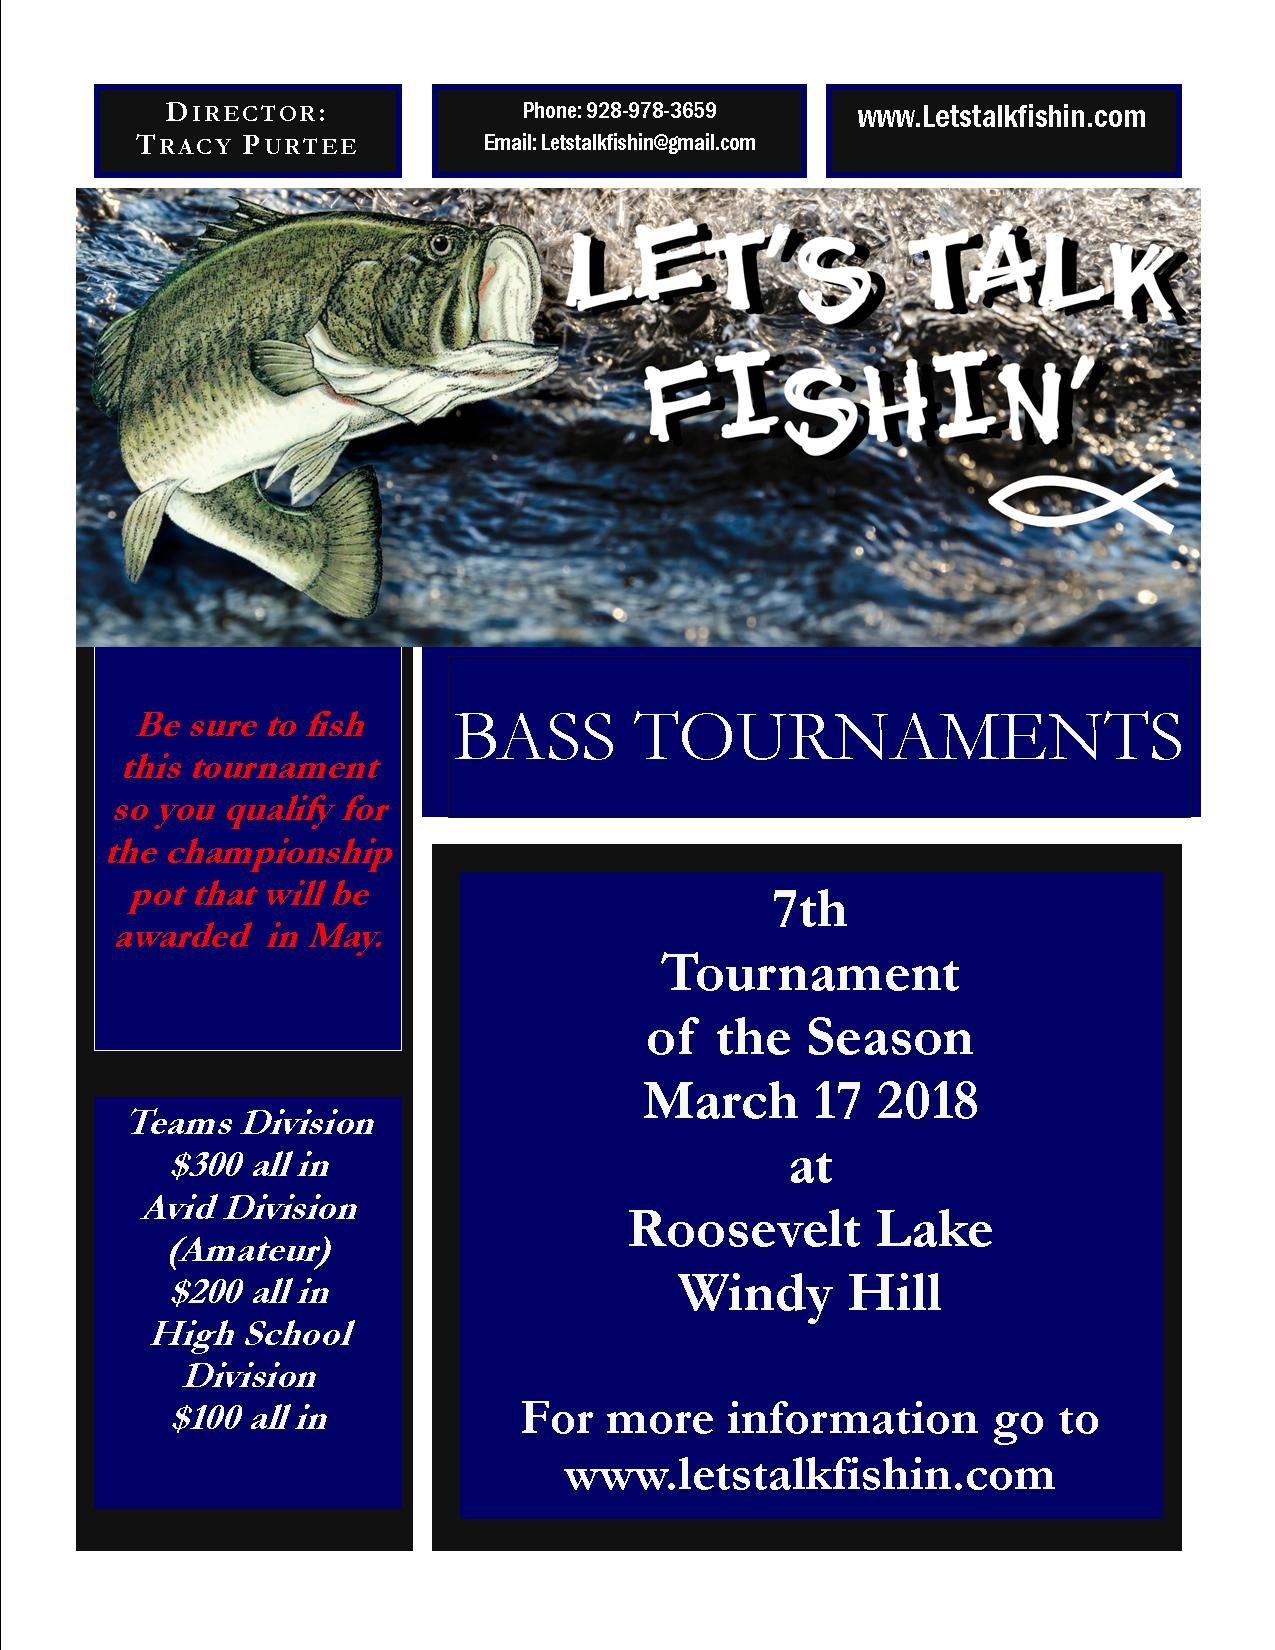 Click image for larger version  Name:7th Tournament.jpg Views:1841 Size:283.6 KB ID:96826